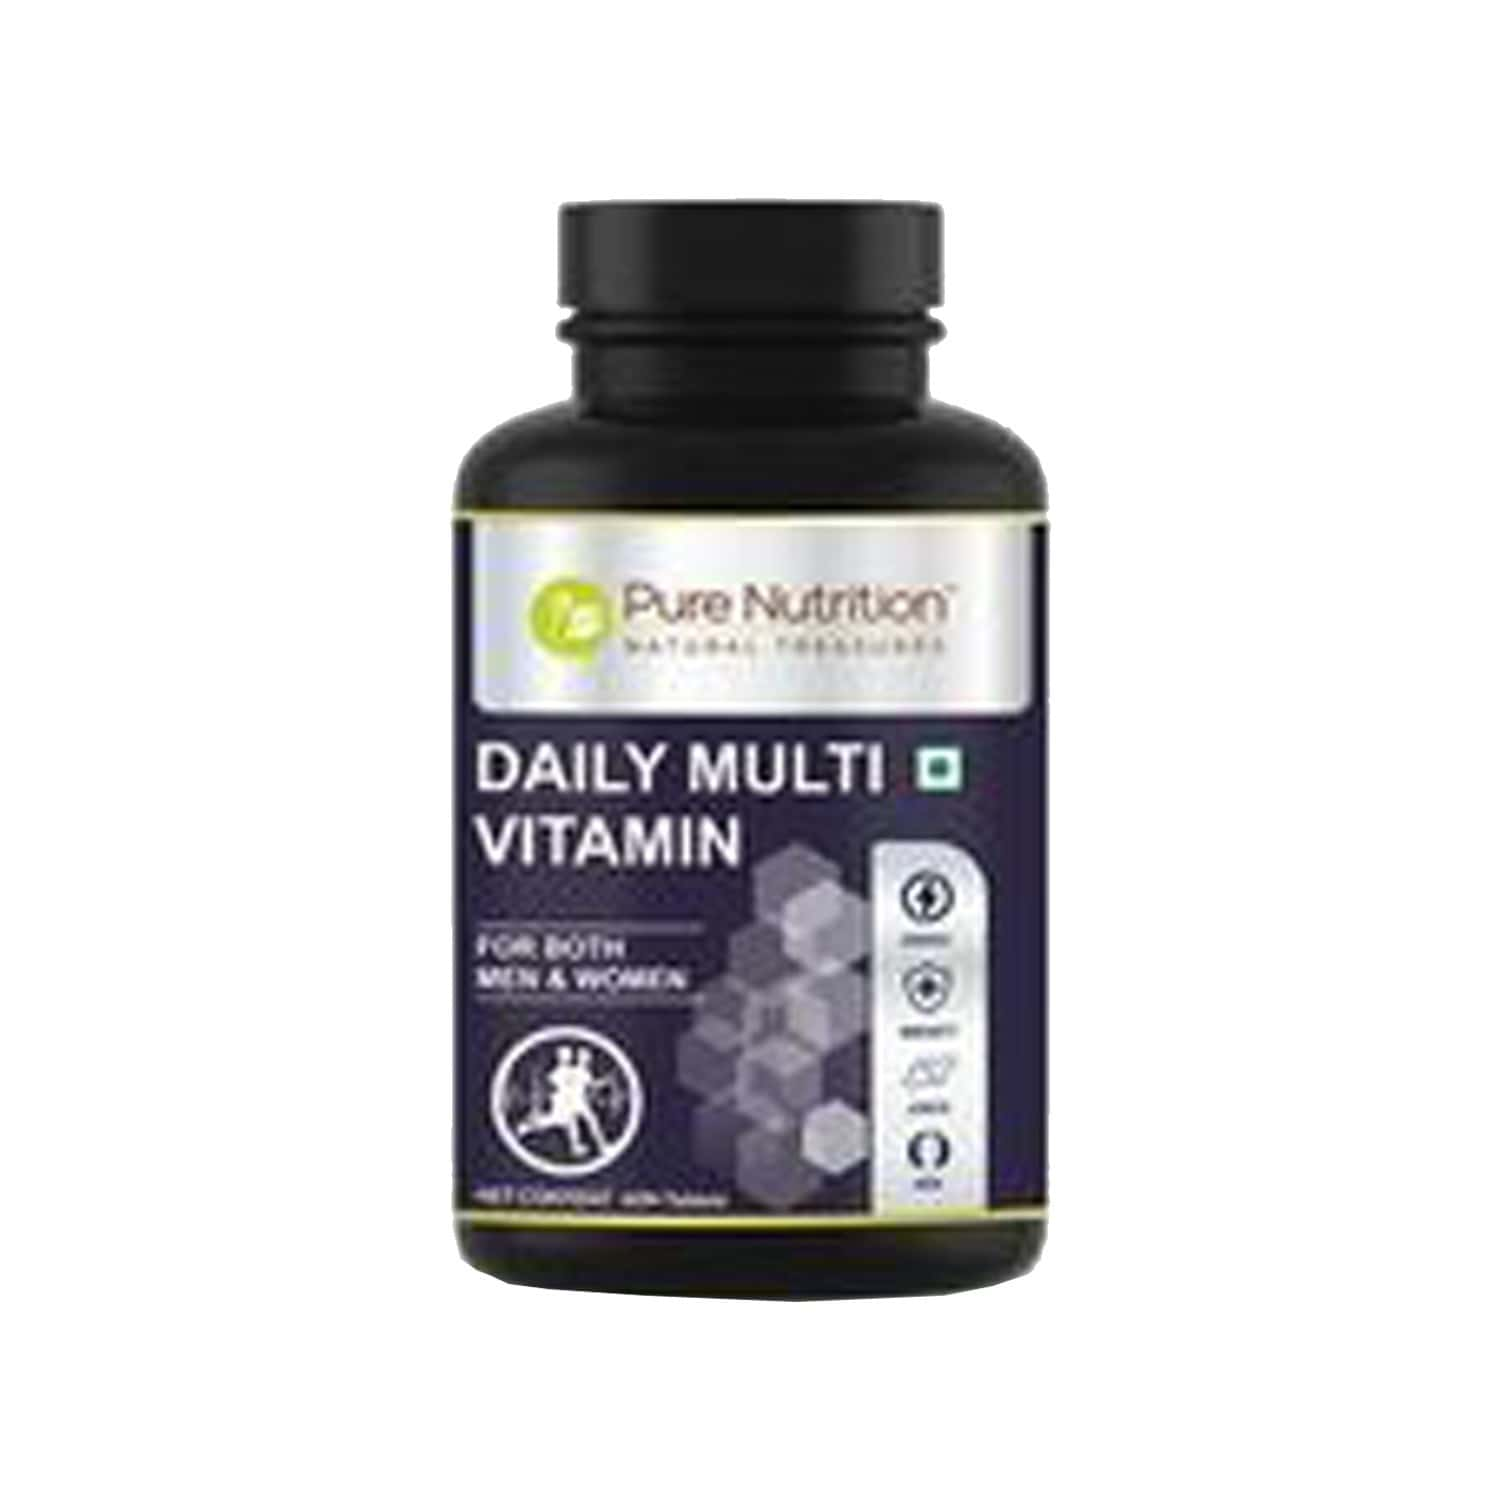 Pure Nutrition Daily Multivitamin - For Men & Women - With 6 Botanical Extracts & Essential Minerals For Immunity - Energy & Skin Health - 60 Tablets